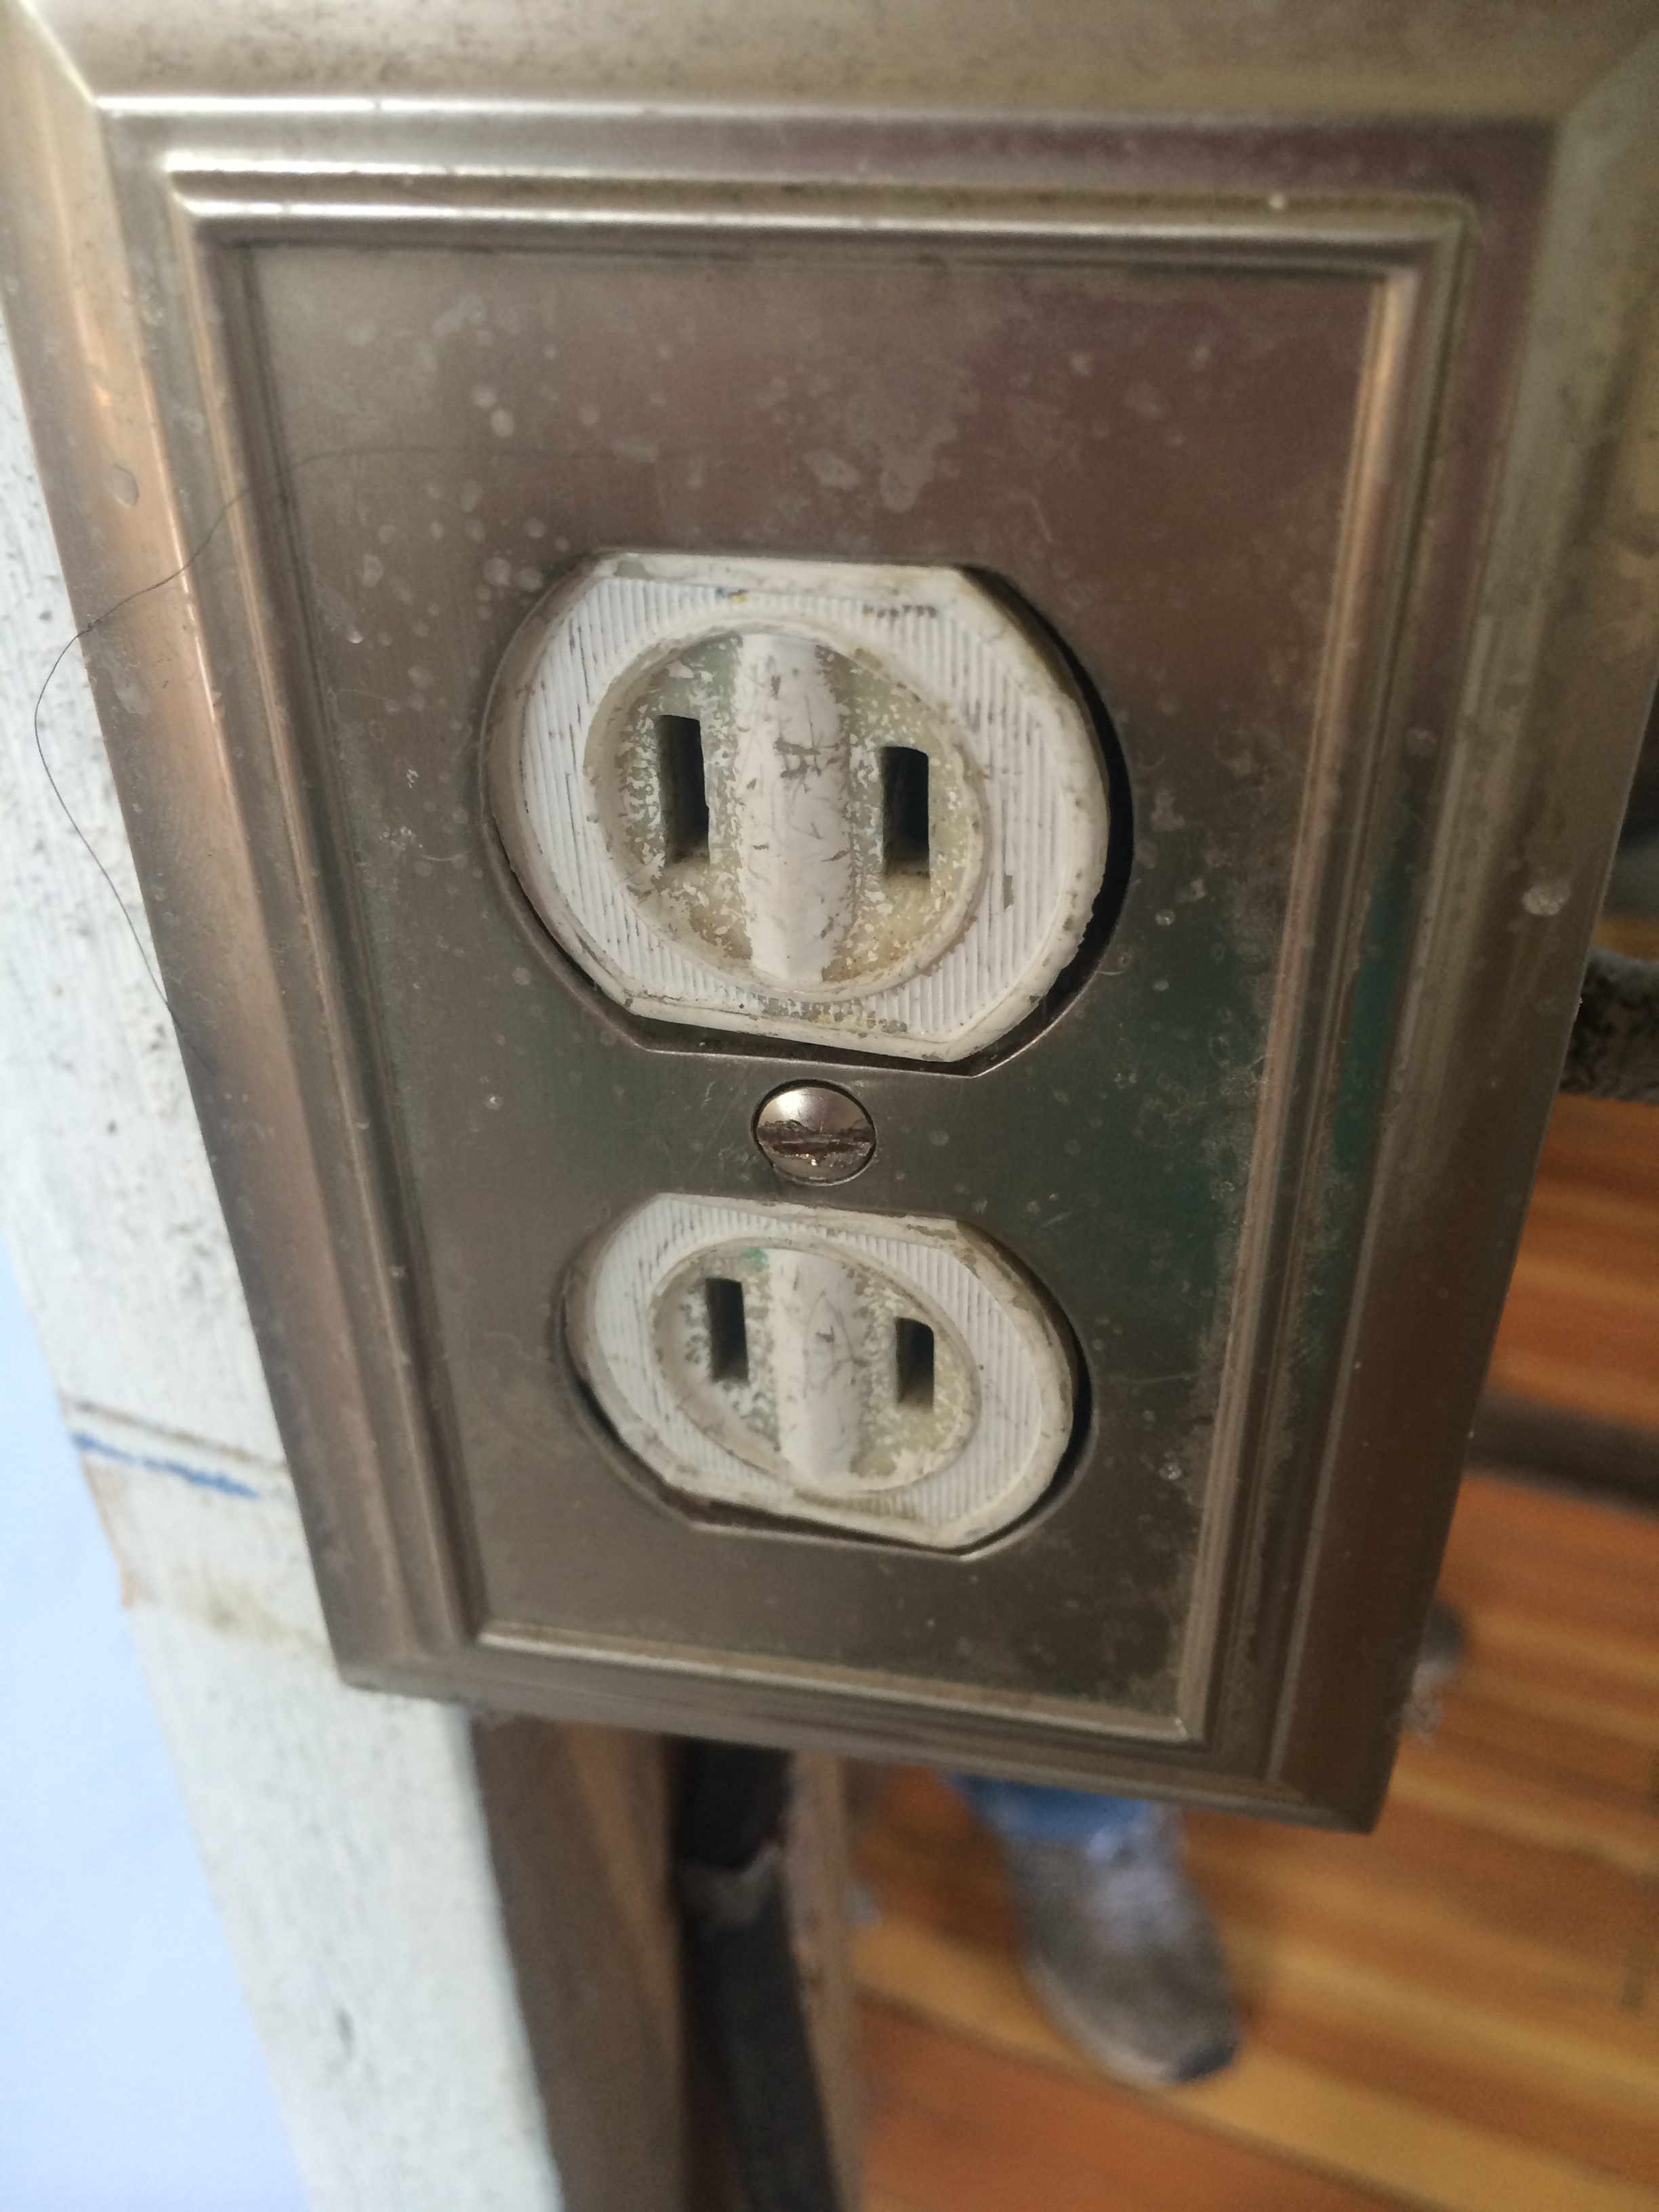 Old Homes Scott Rosenthal Real Estate The Team 2 Prong Vs 3 Outlets This Is A Two Outlet Which May Or Not Be Grounded As Opposed To Nec Required Three Used Today